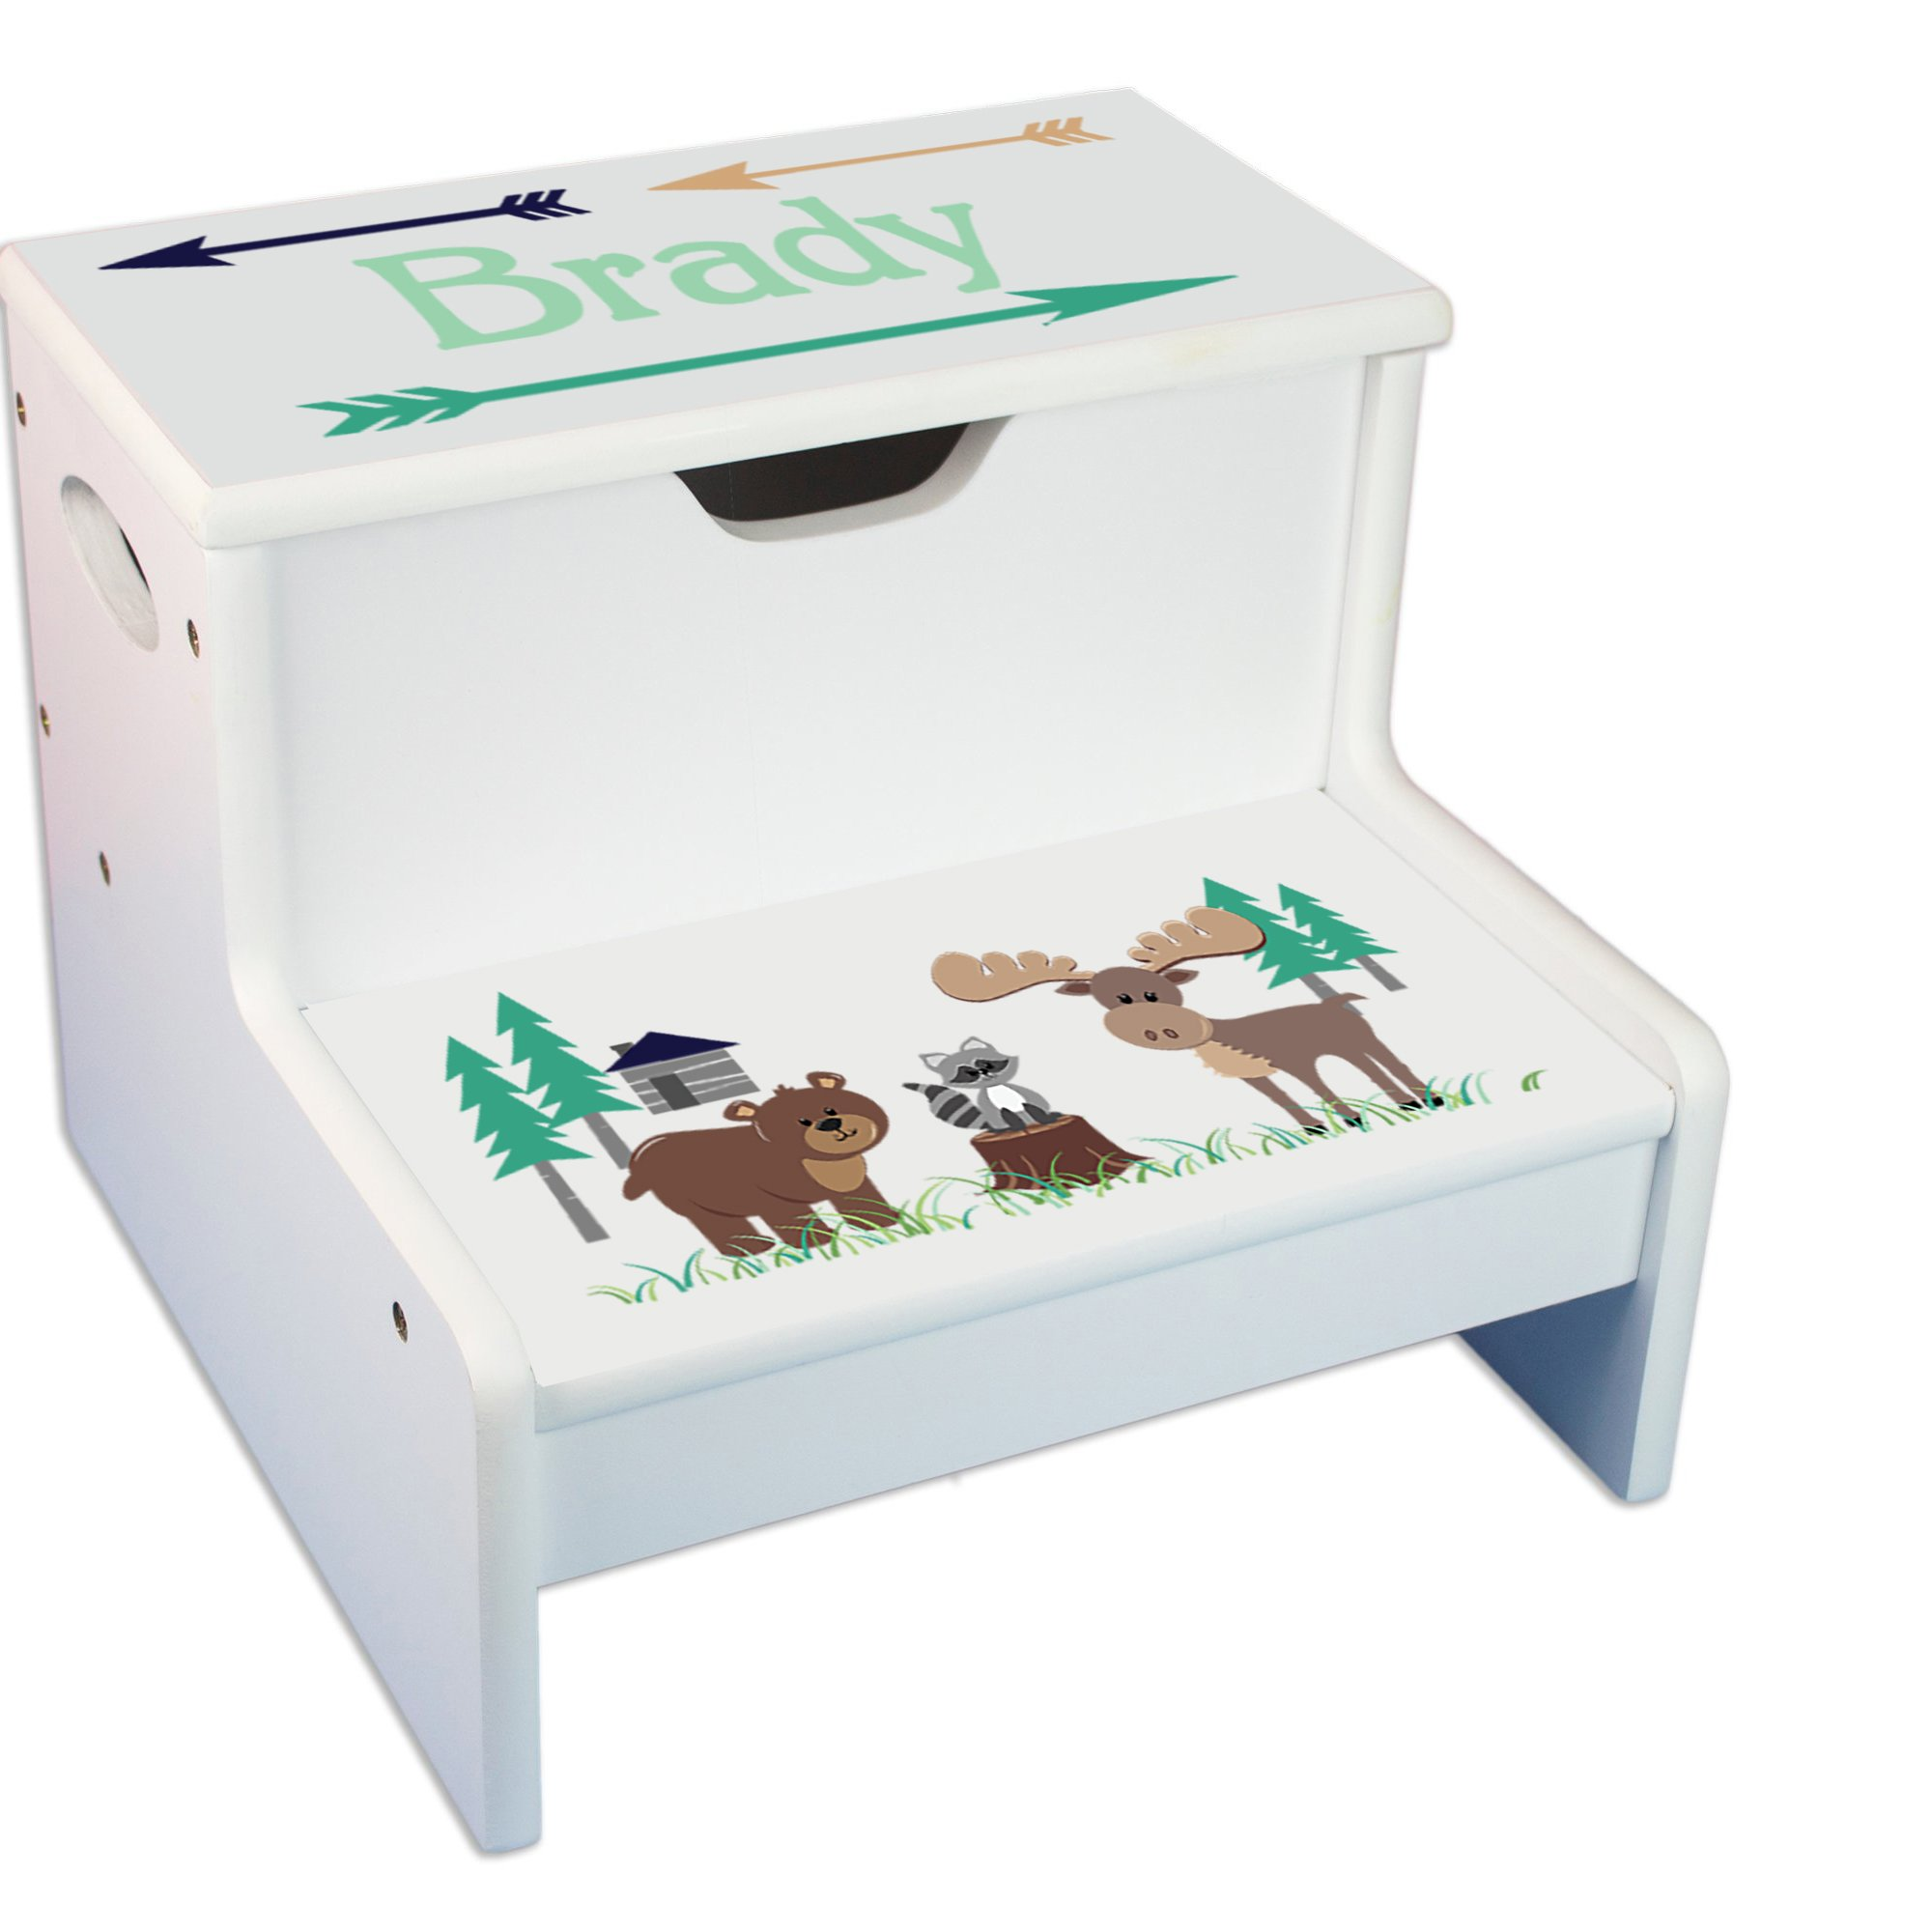 Personalized North Woodland Critters White Childrens Step Stool with Storage